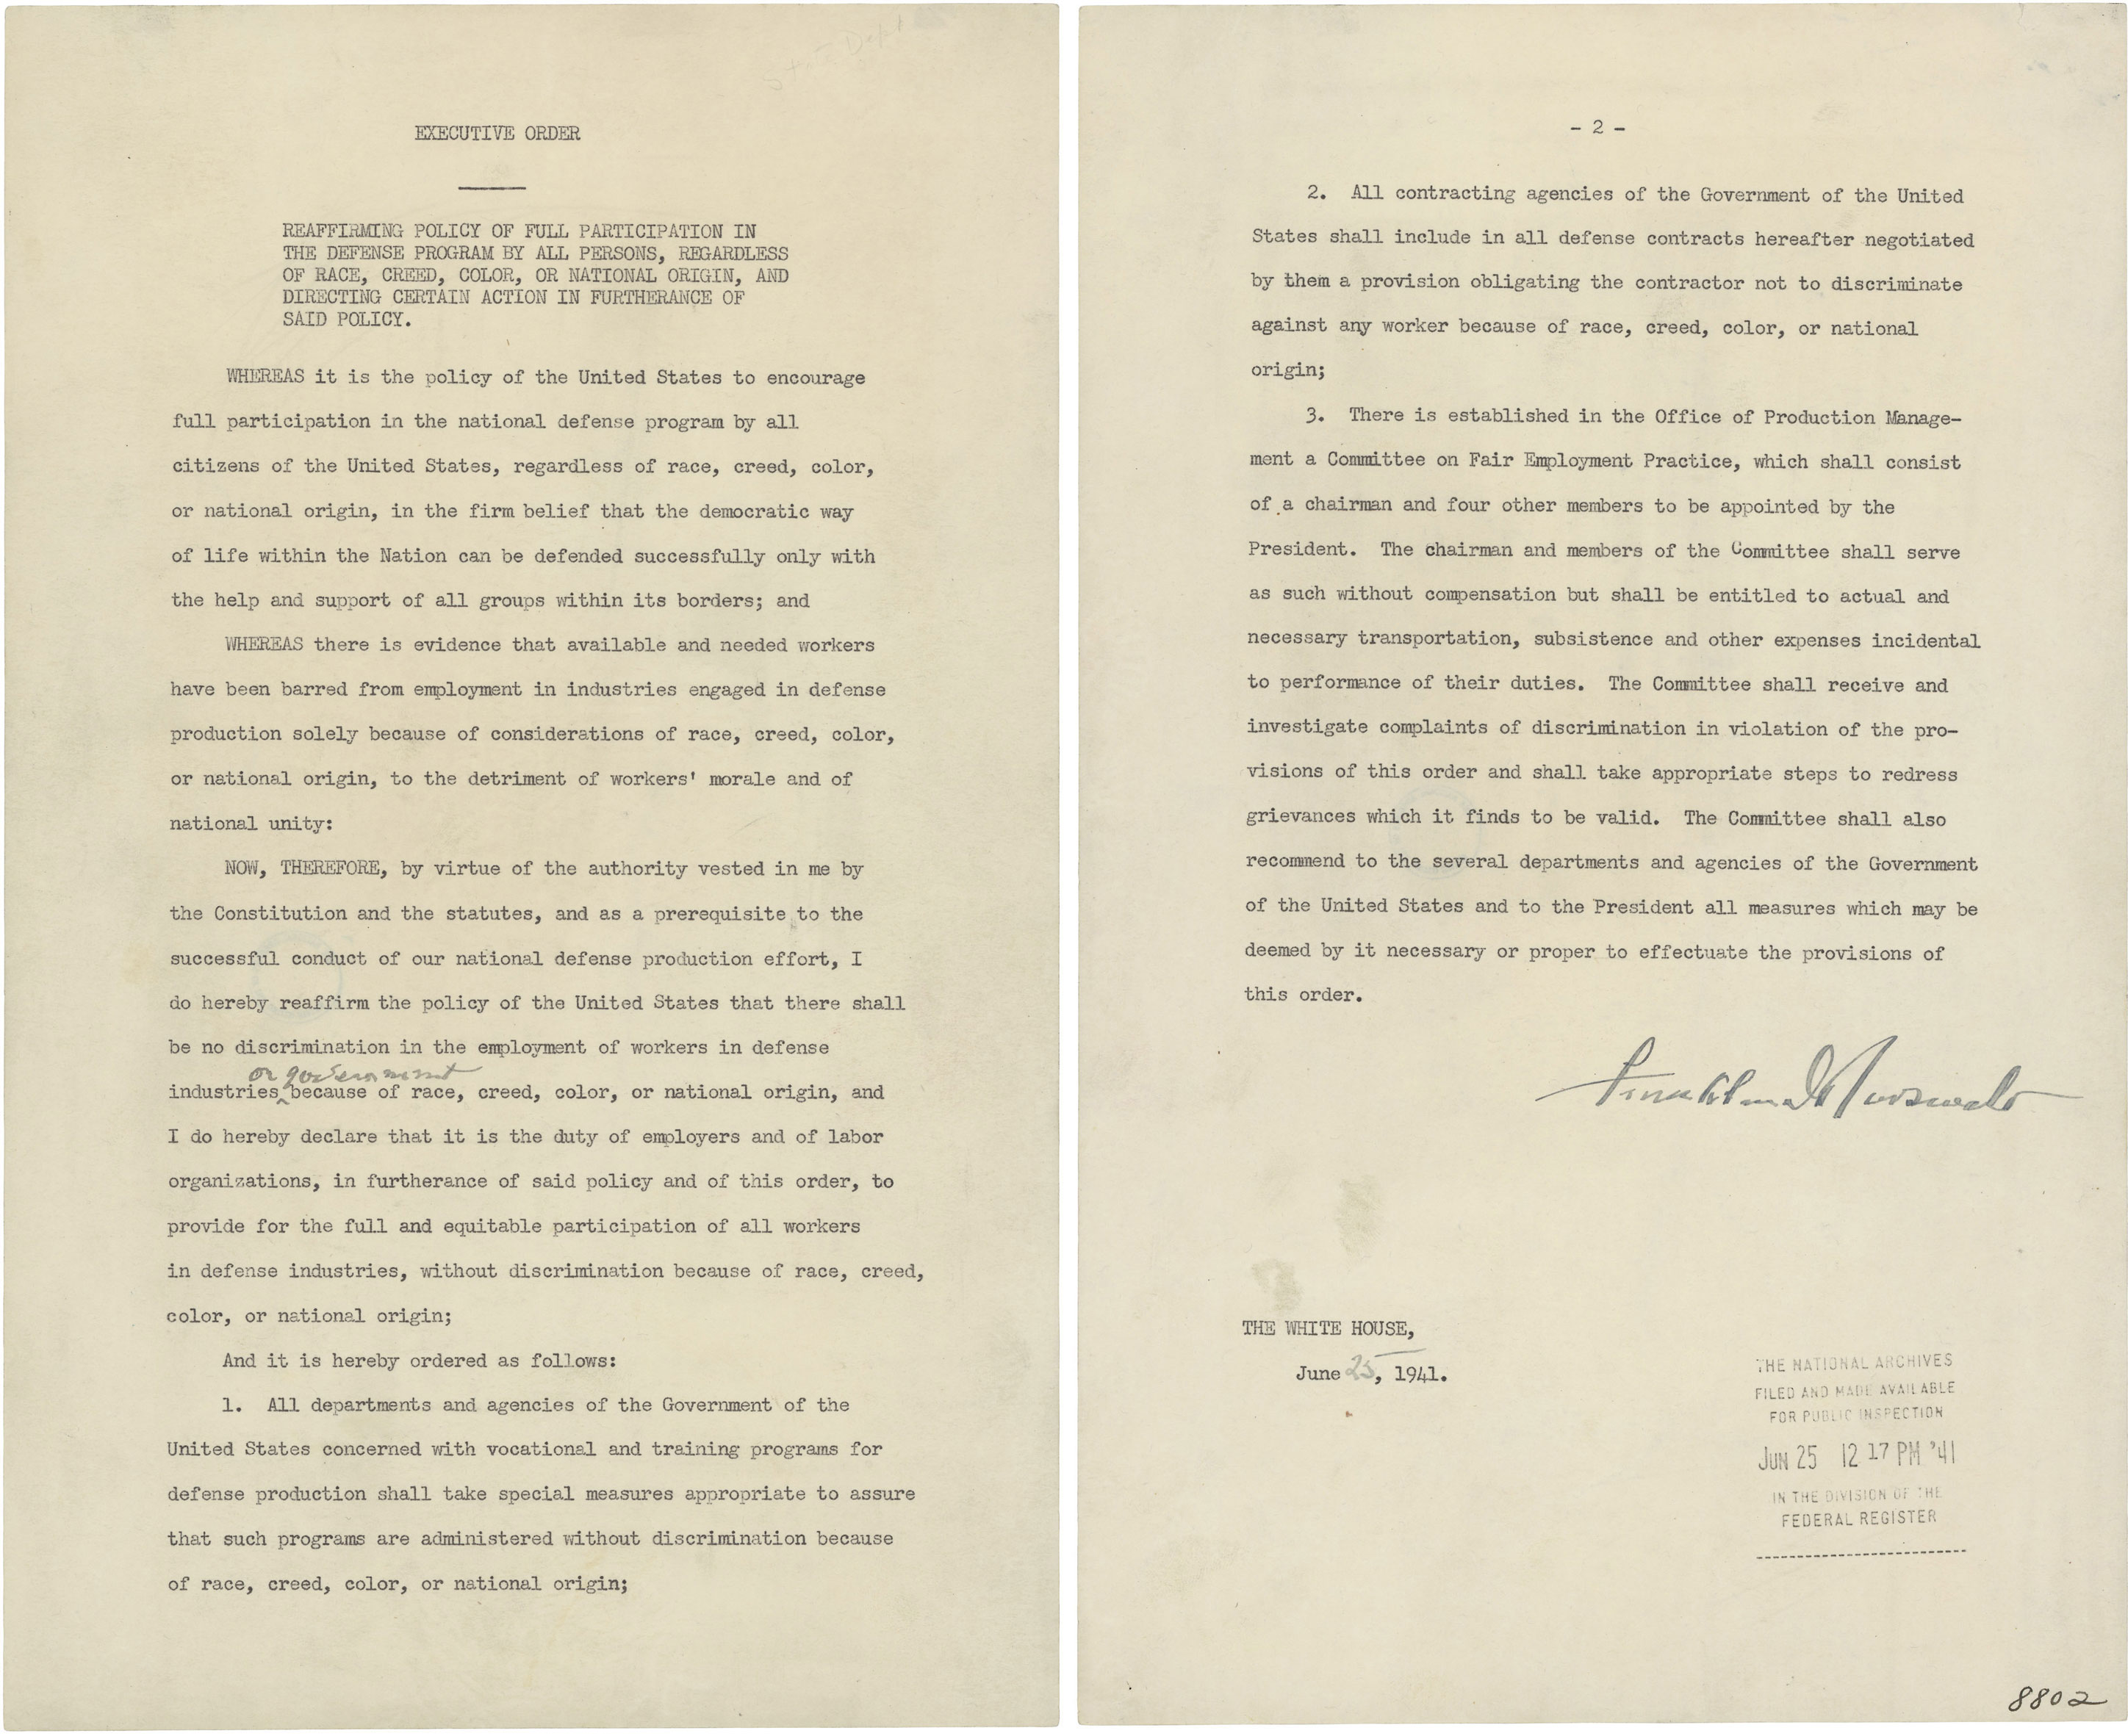 Executive Order 8802 in which President Franklin D. Roosevelt Prohibits Discrimination in the Defense Program